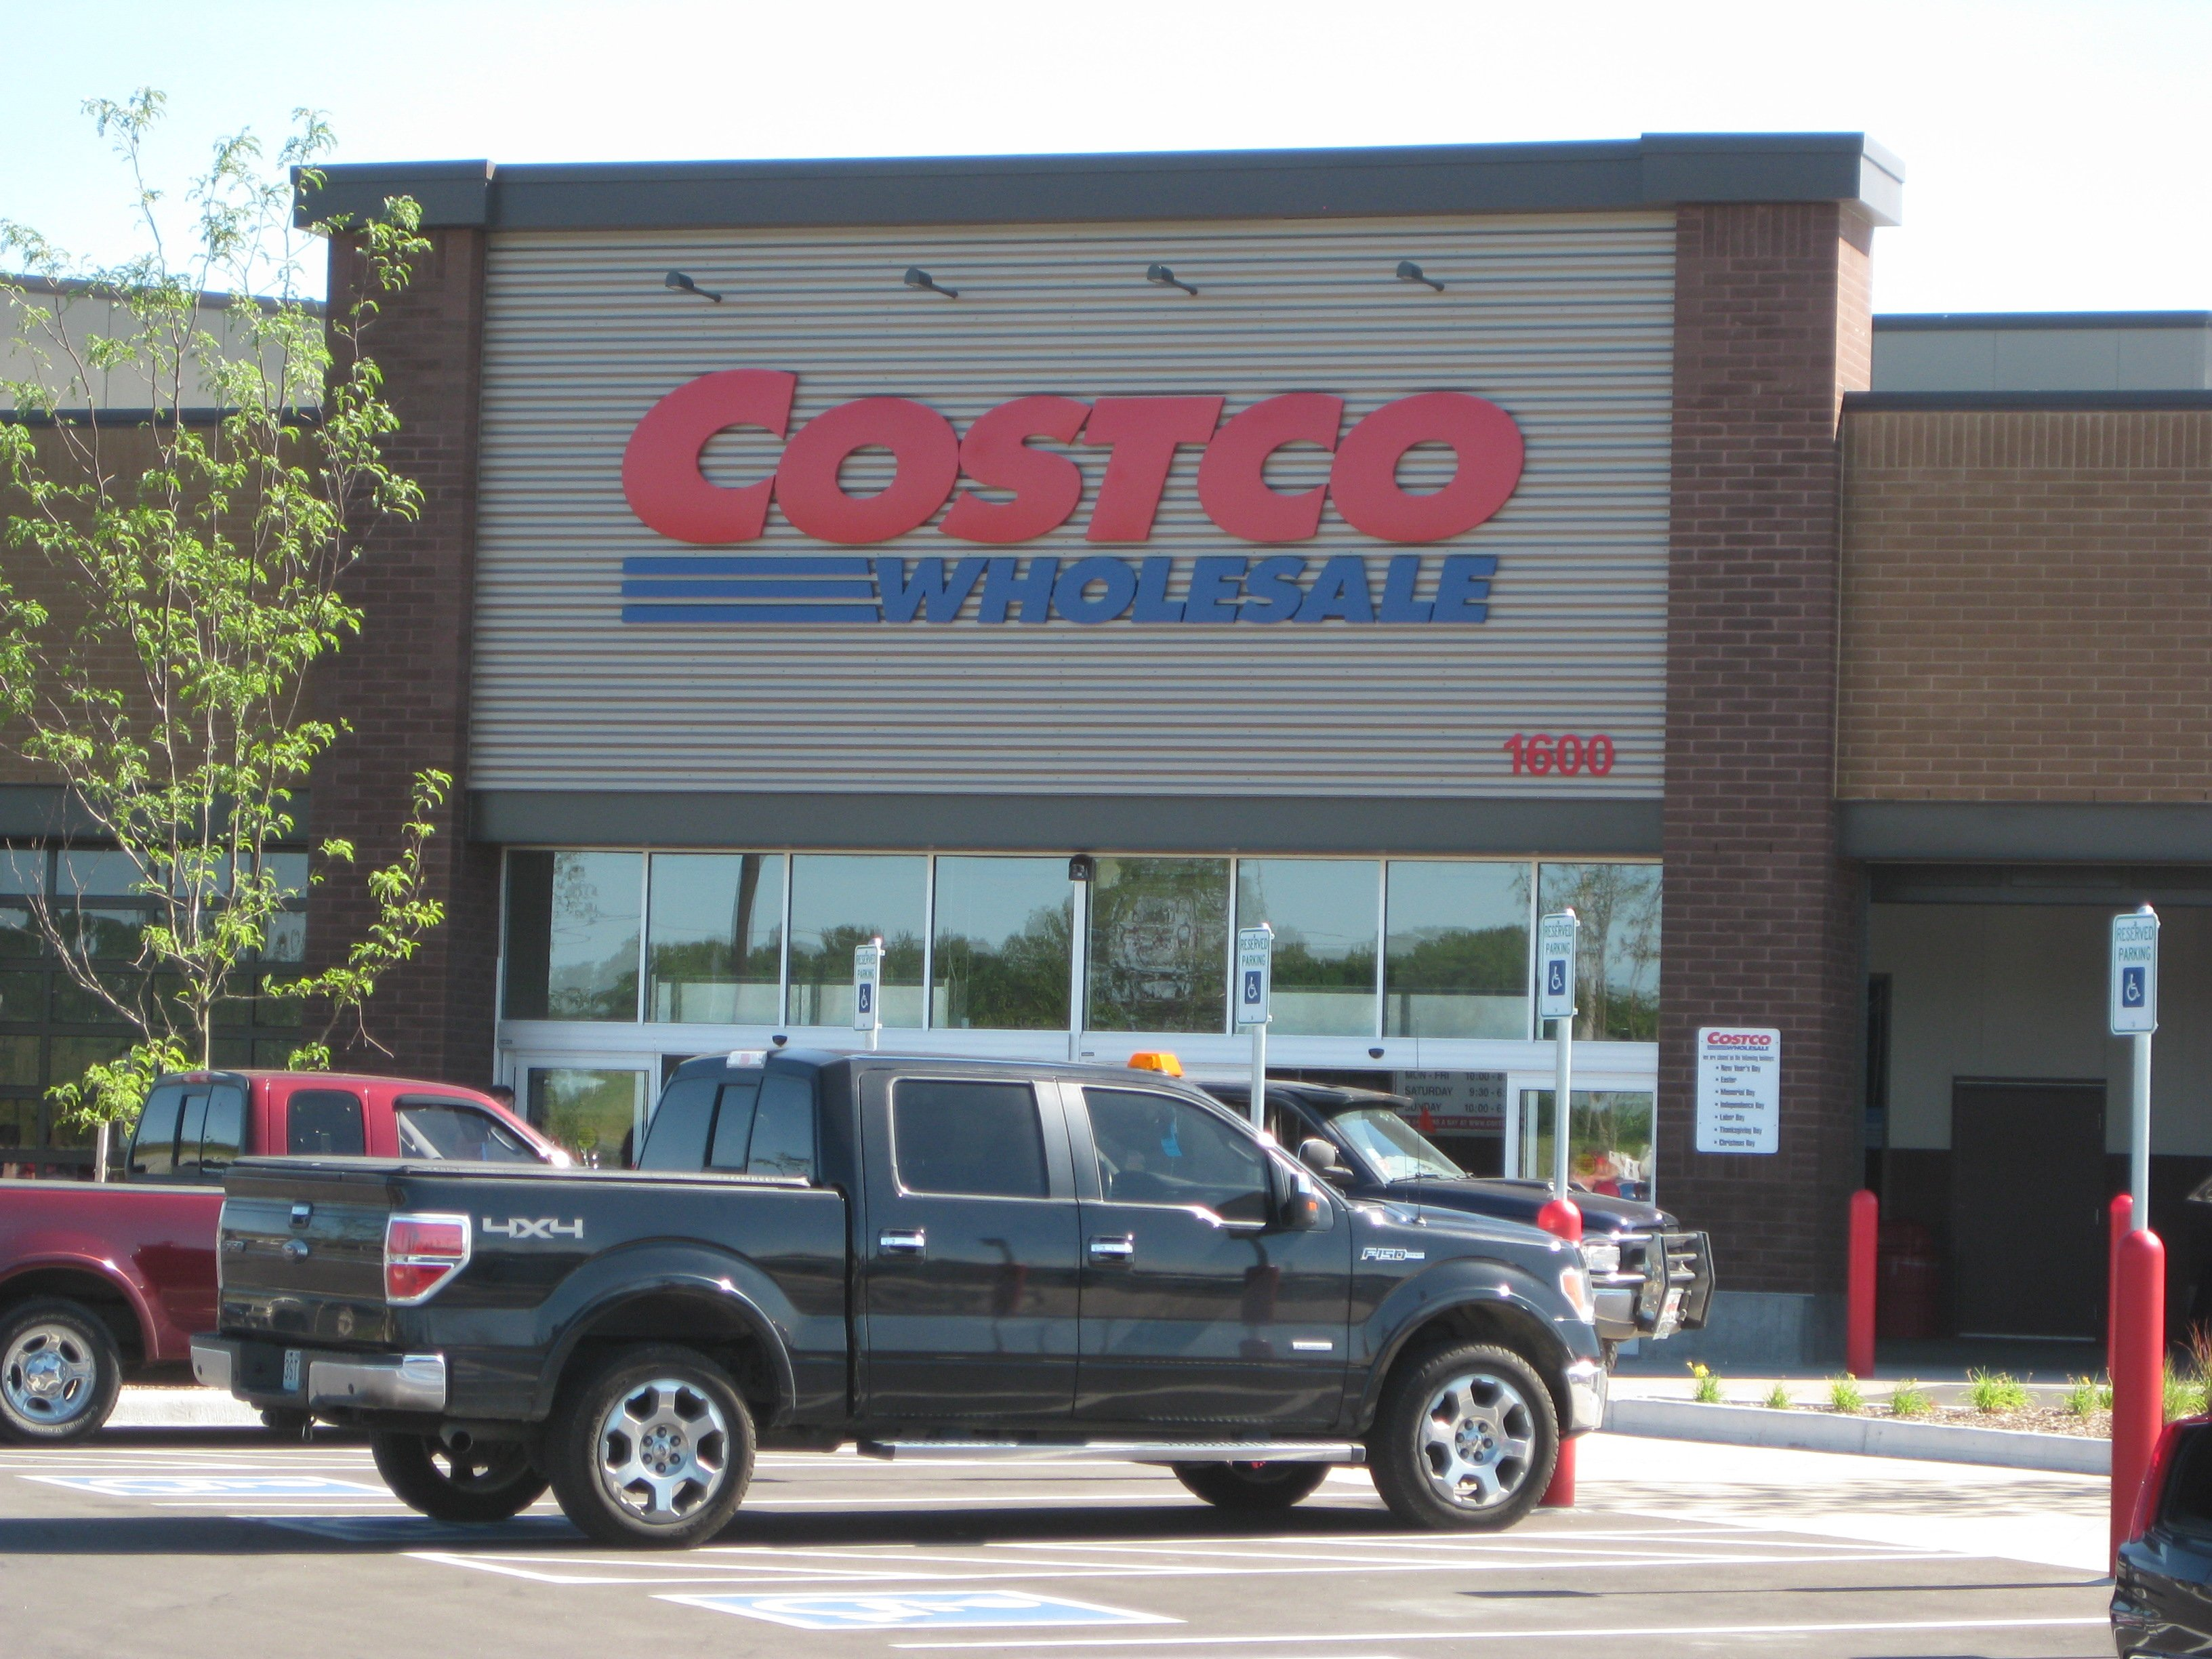 Costco storefront with a pickup truck parked